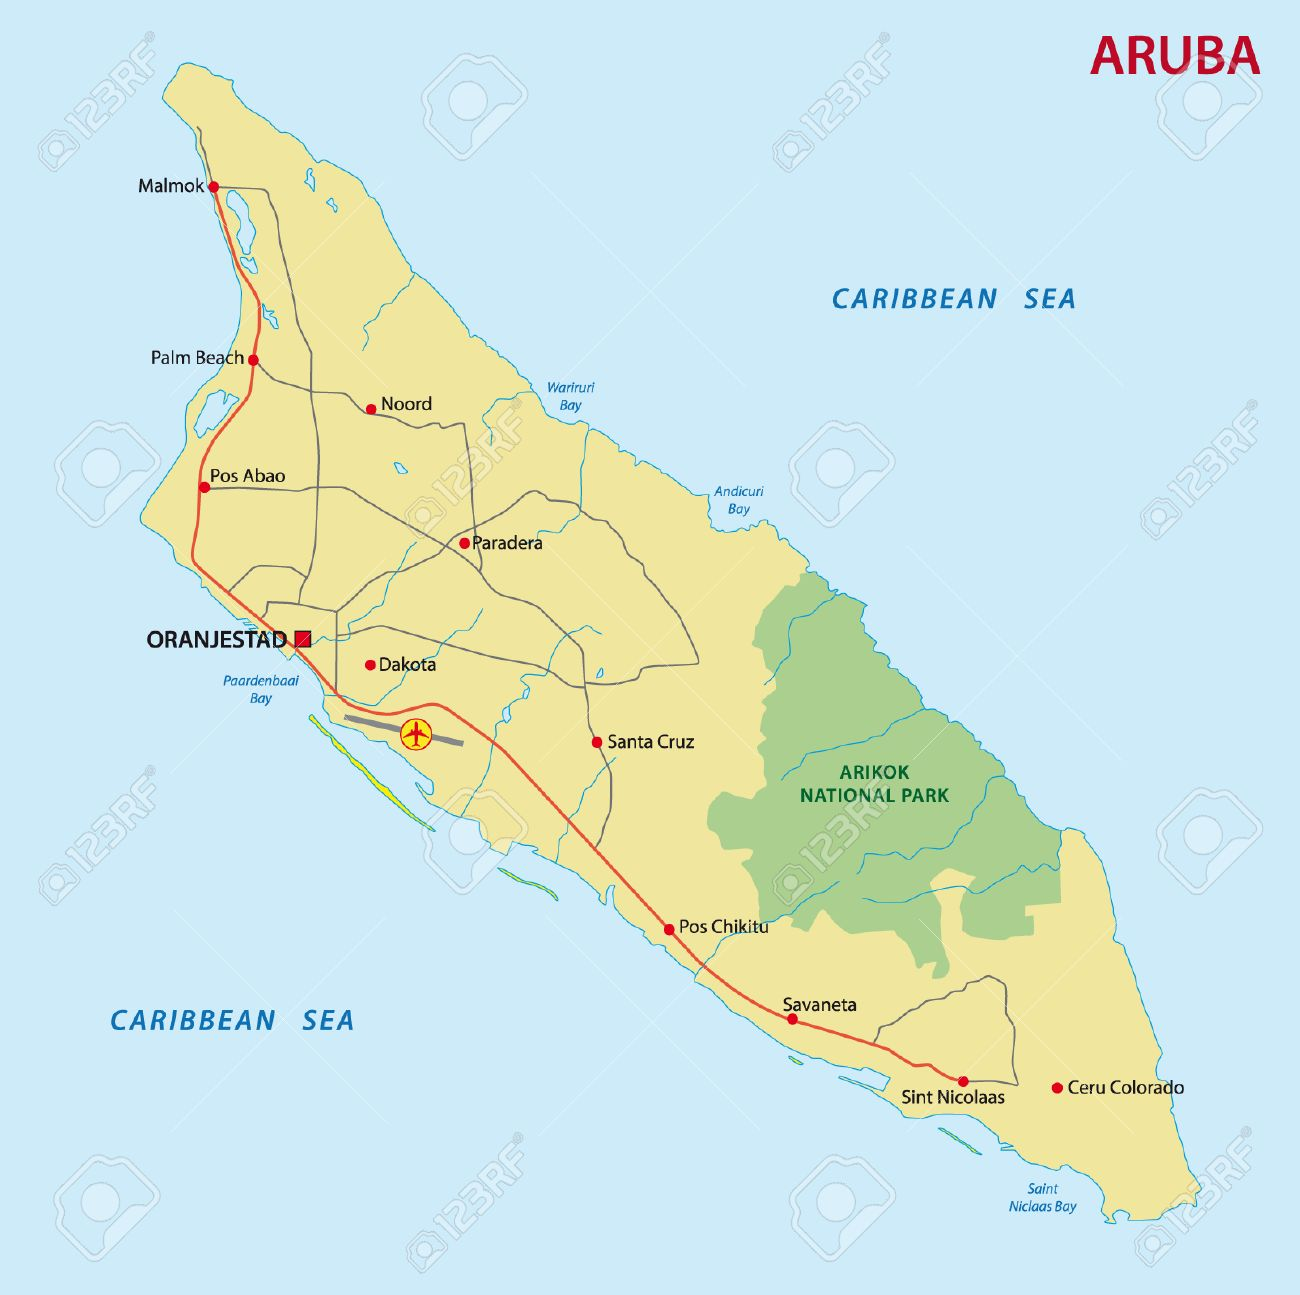 Aruba Map Royalty Free Cliparts Vectors And Stock Illustration - Aruba map vector